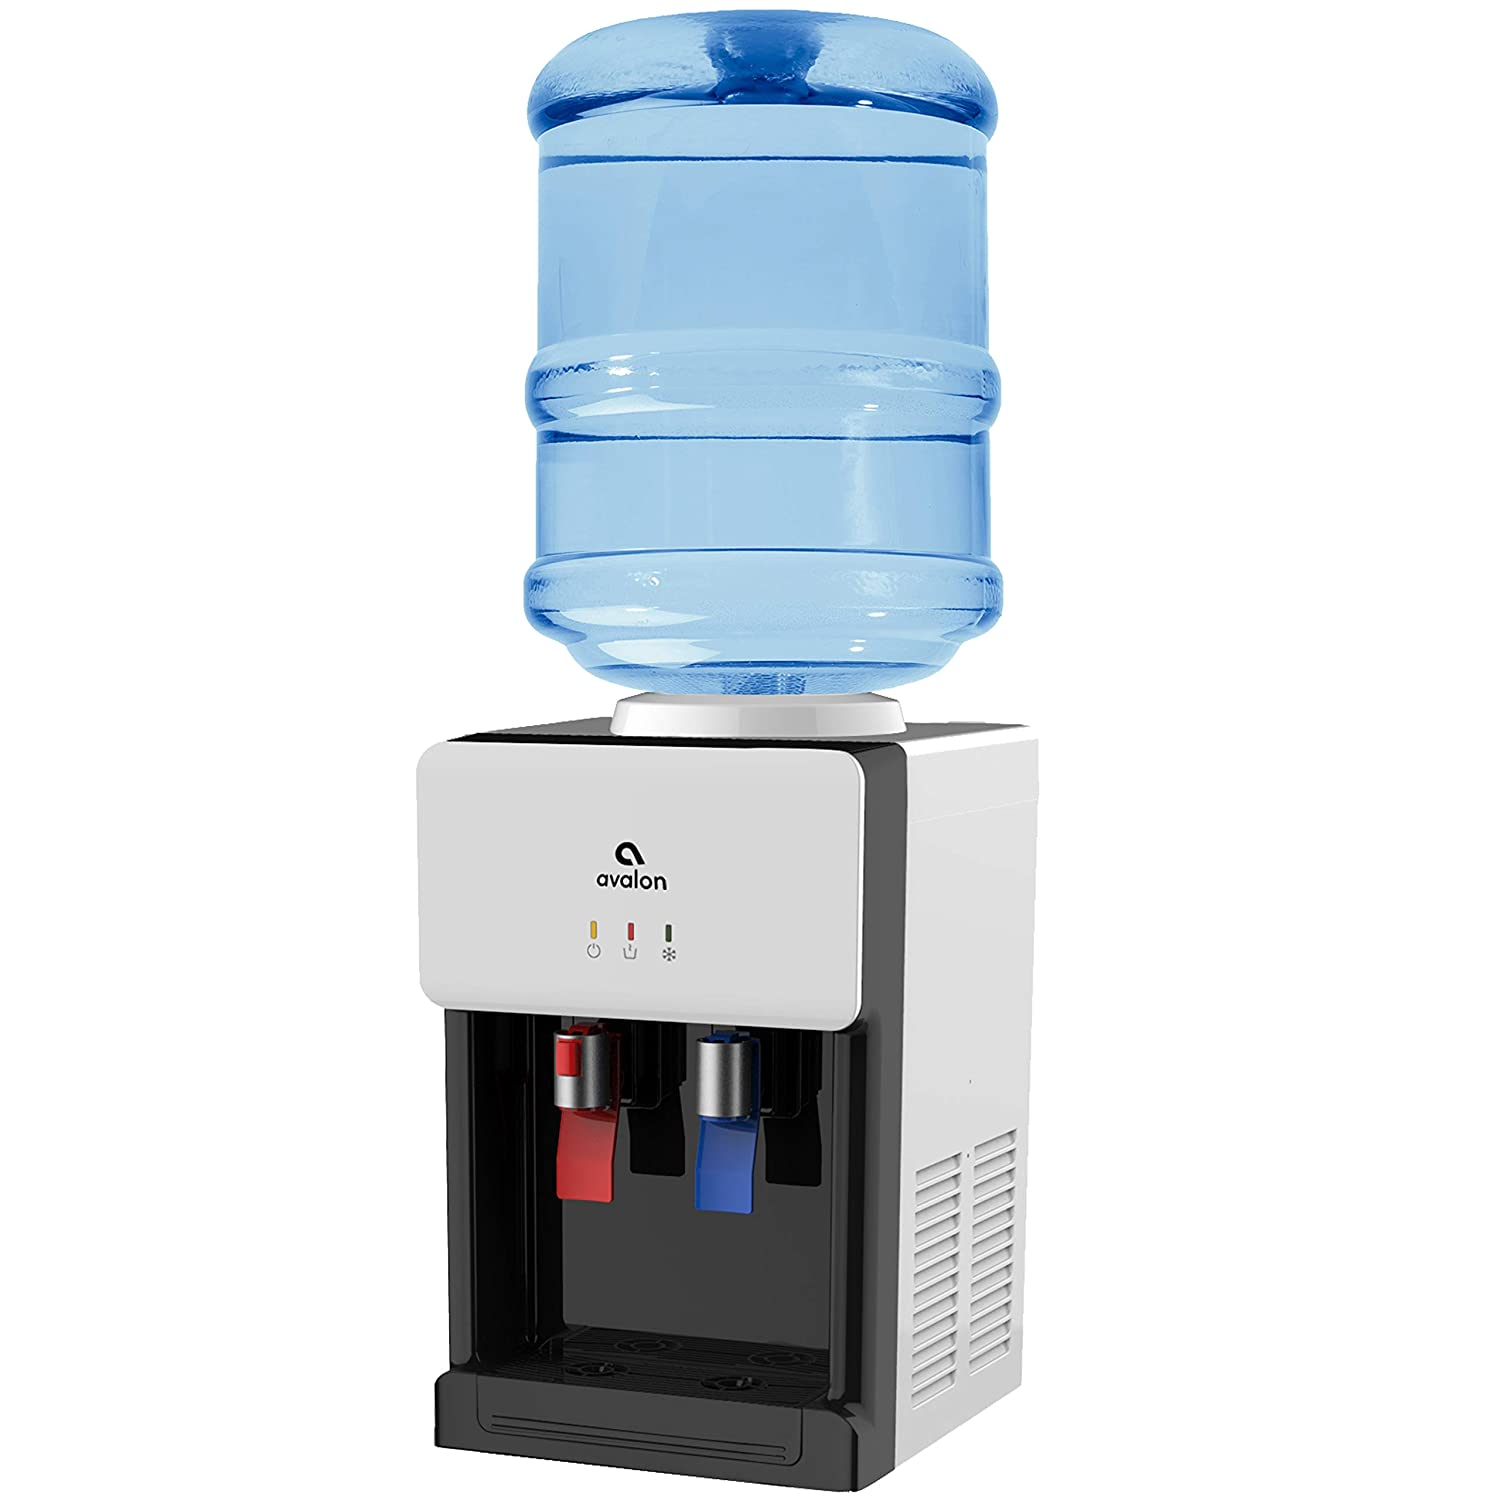 Avalon Premium Hot/Cold Top Loading Countertop Water Cooler Dispenser With Child Safety Lock. UL/Energy Star Approved- White - A1CTWTRCLRWHT